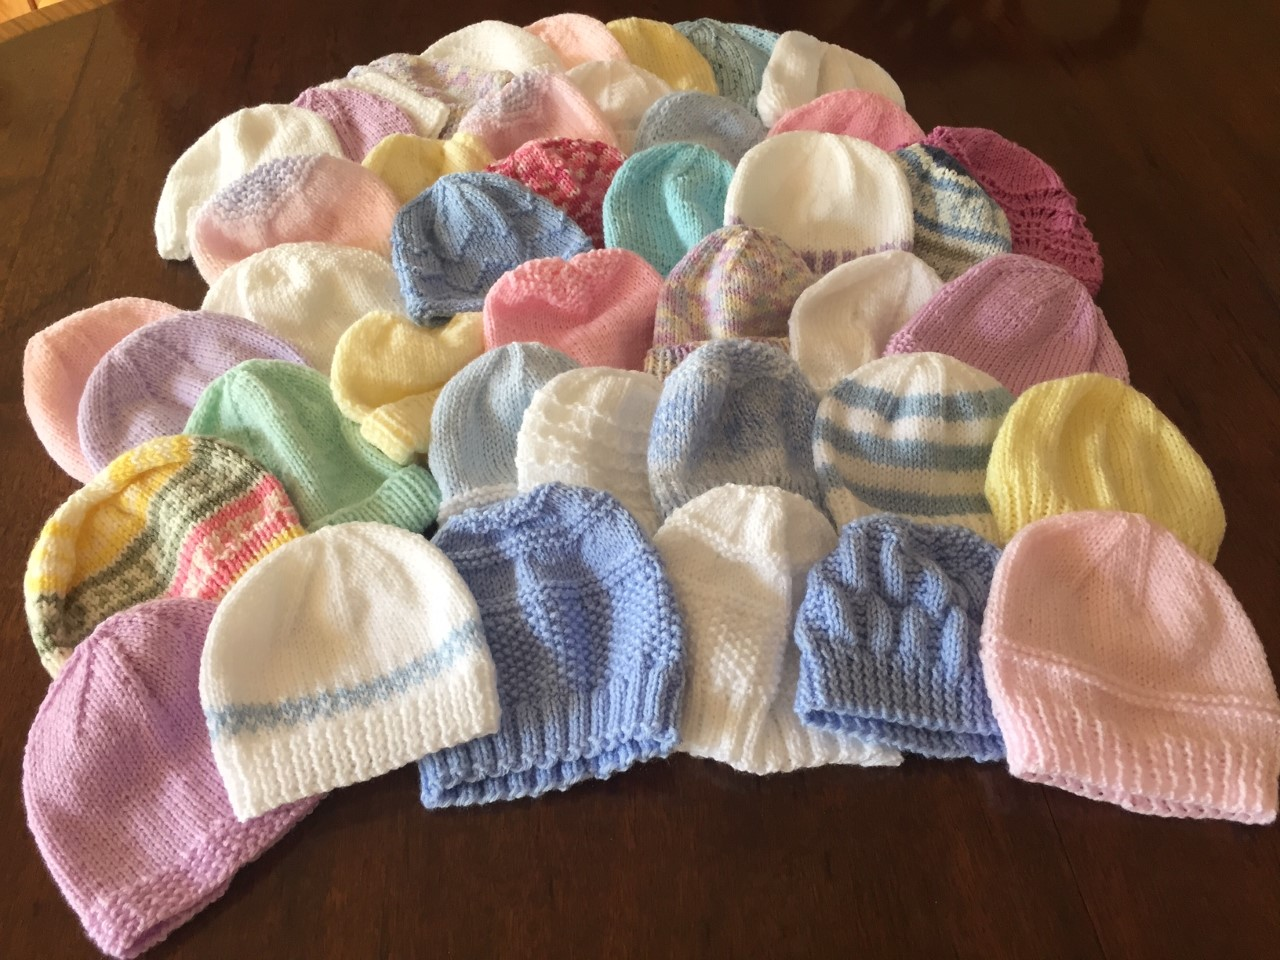 Baby hats for QEUH maternity unit